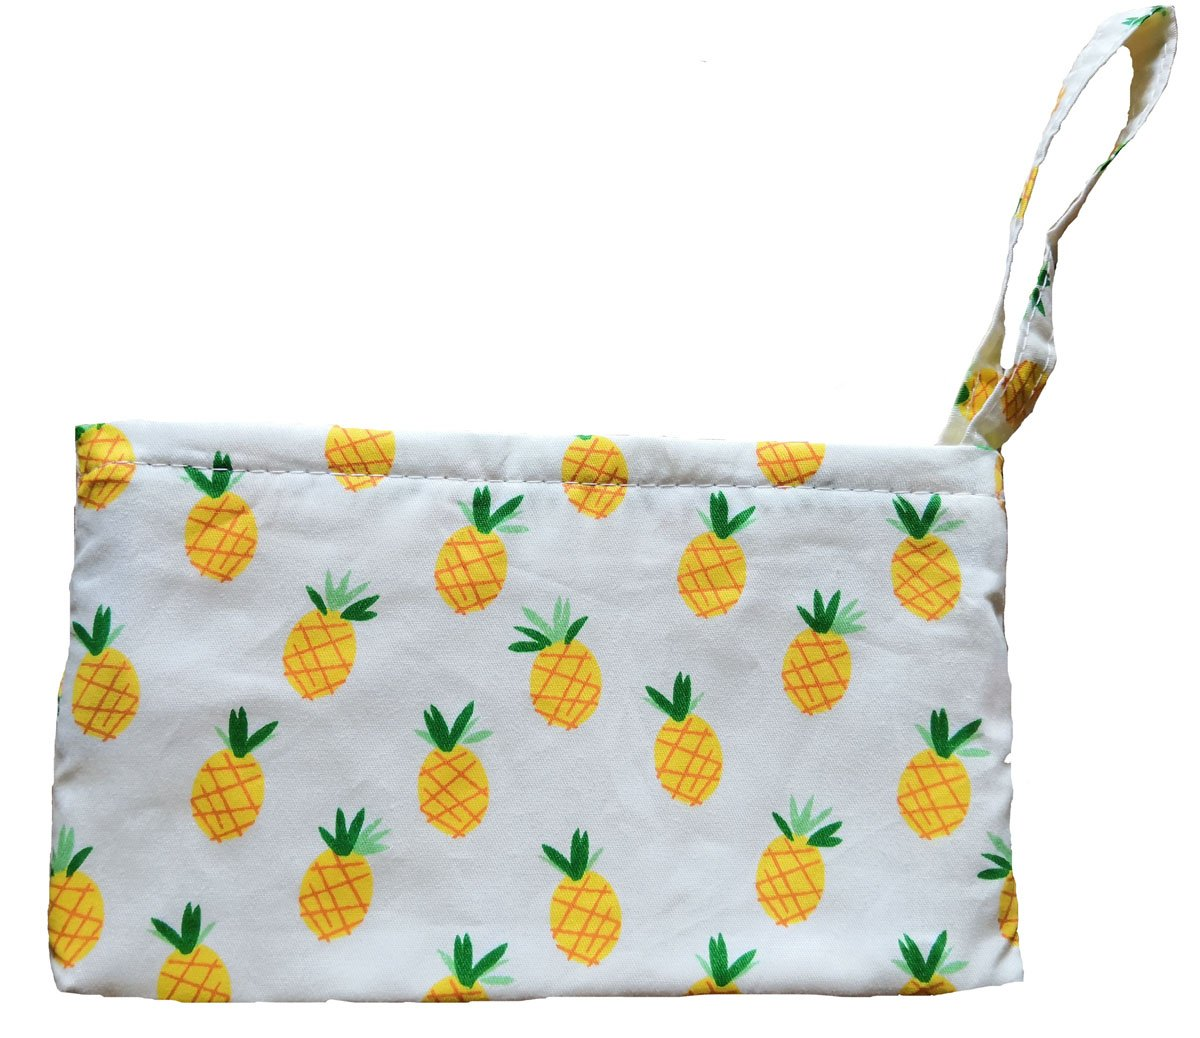 Women's Canvas Tote Shoulder Bag Stylish Shopping Casual Bag Foldaway Travel Bag (R-coin purse-Pineapple print)